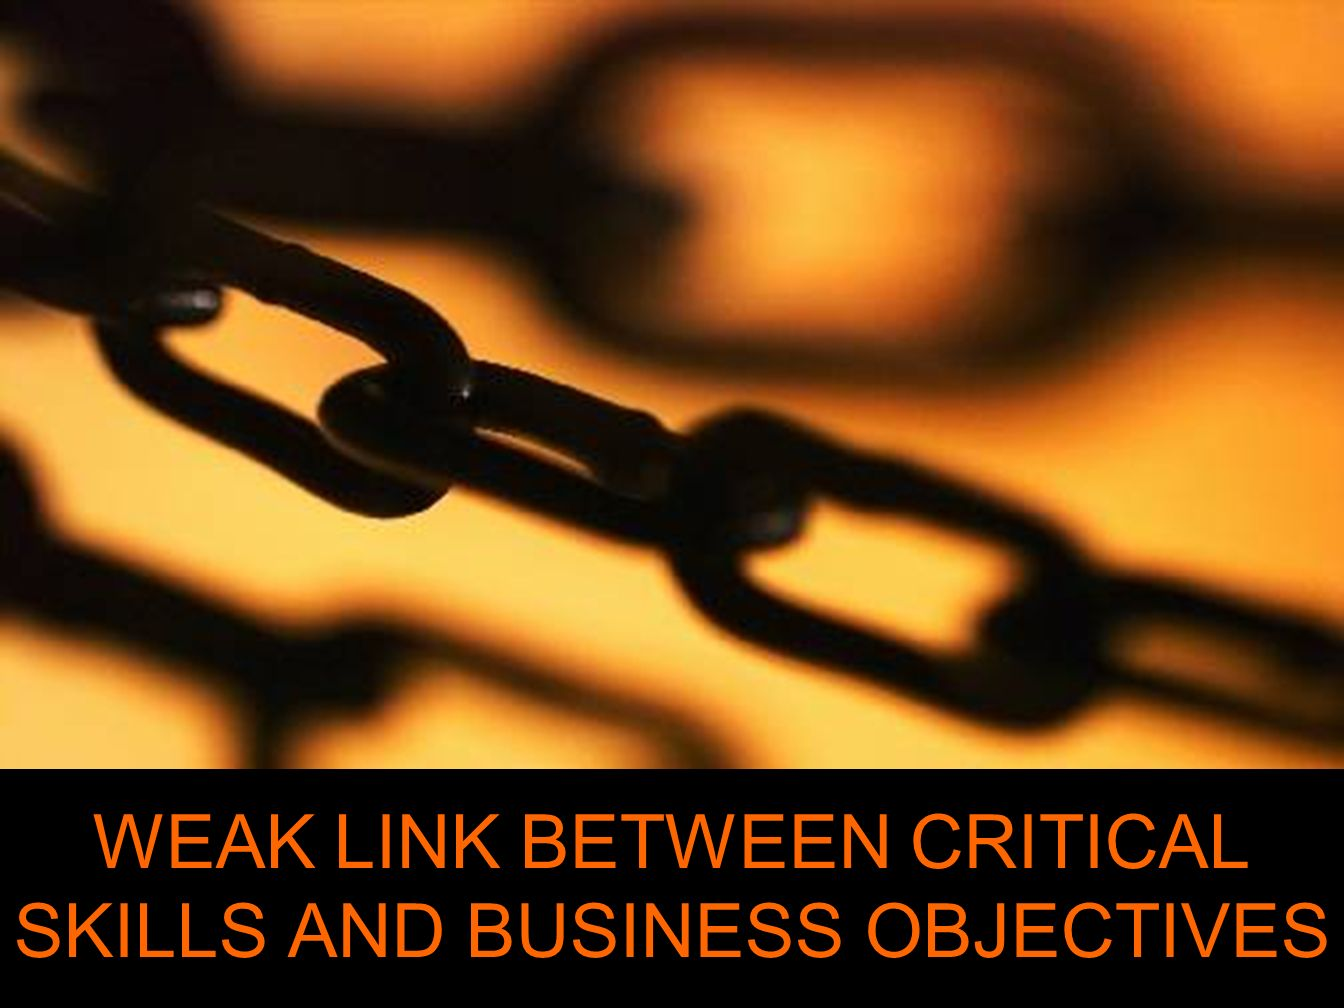 WEAK LINK BETWEEN CRITICAL SKILLS AND BUSINESS OBJECTIVES